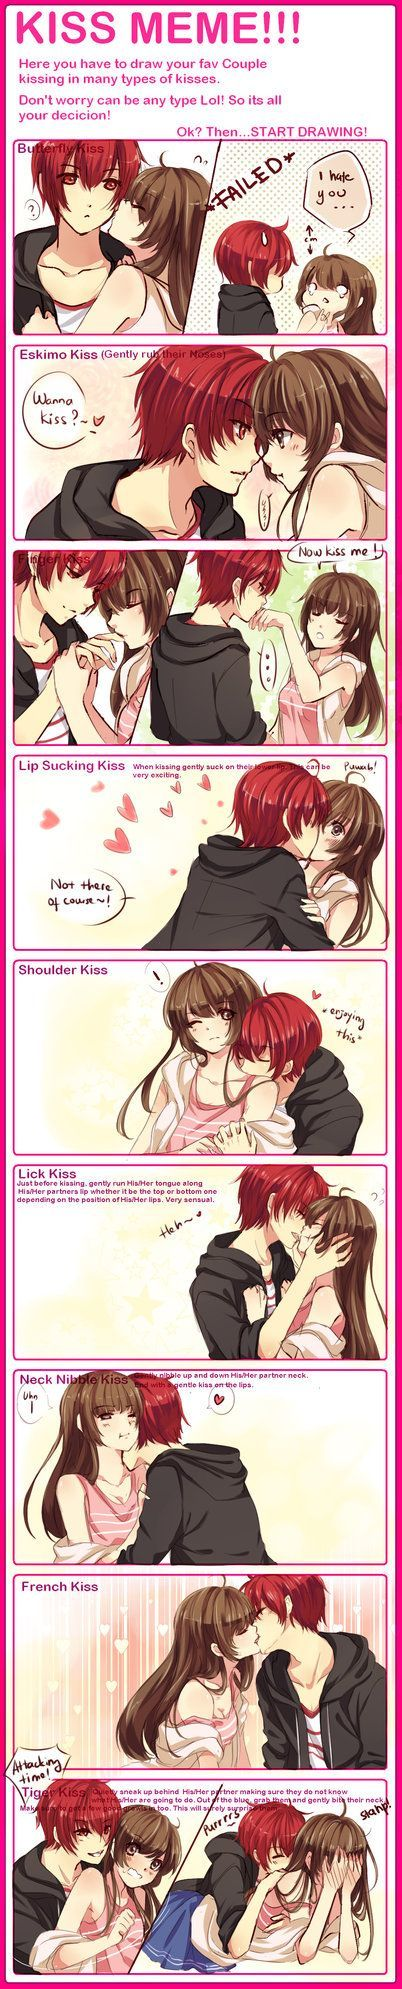 KISS MEME WITH WAIFUUUU by omocha-san on deviantART.. I want a boyfriend who will give me Eskimo kisses:(